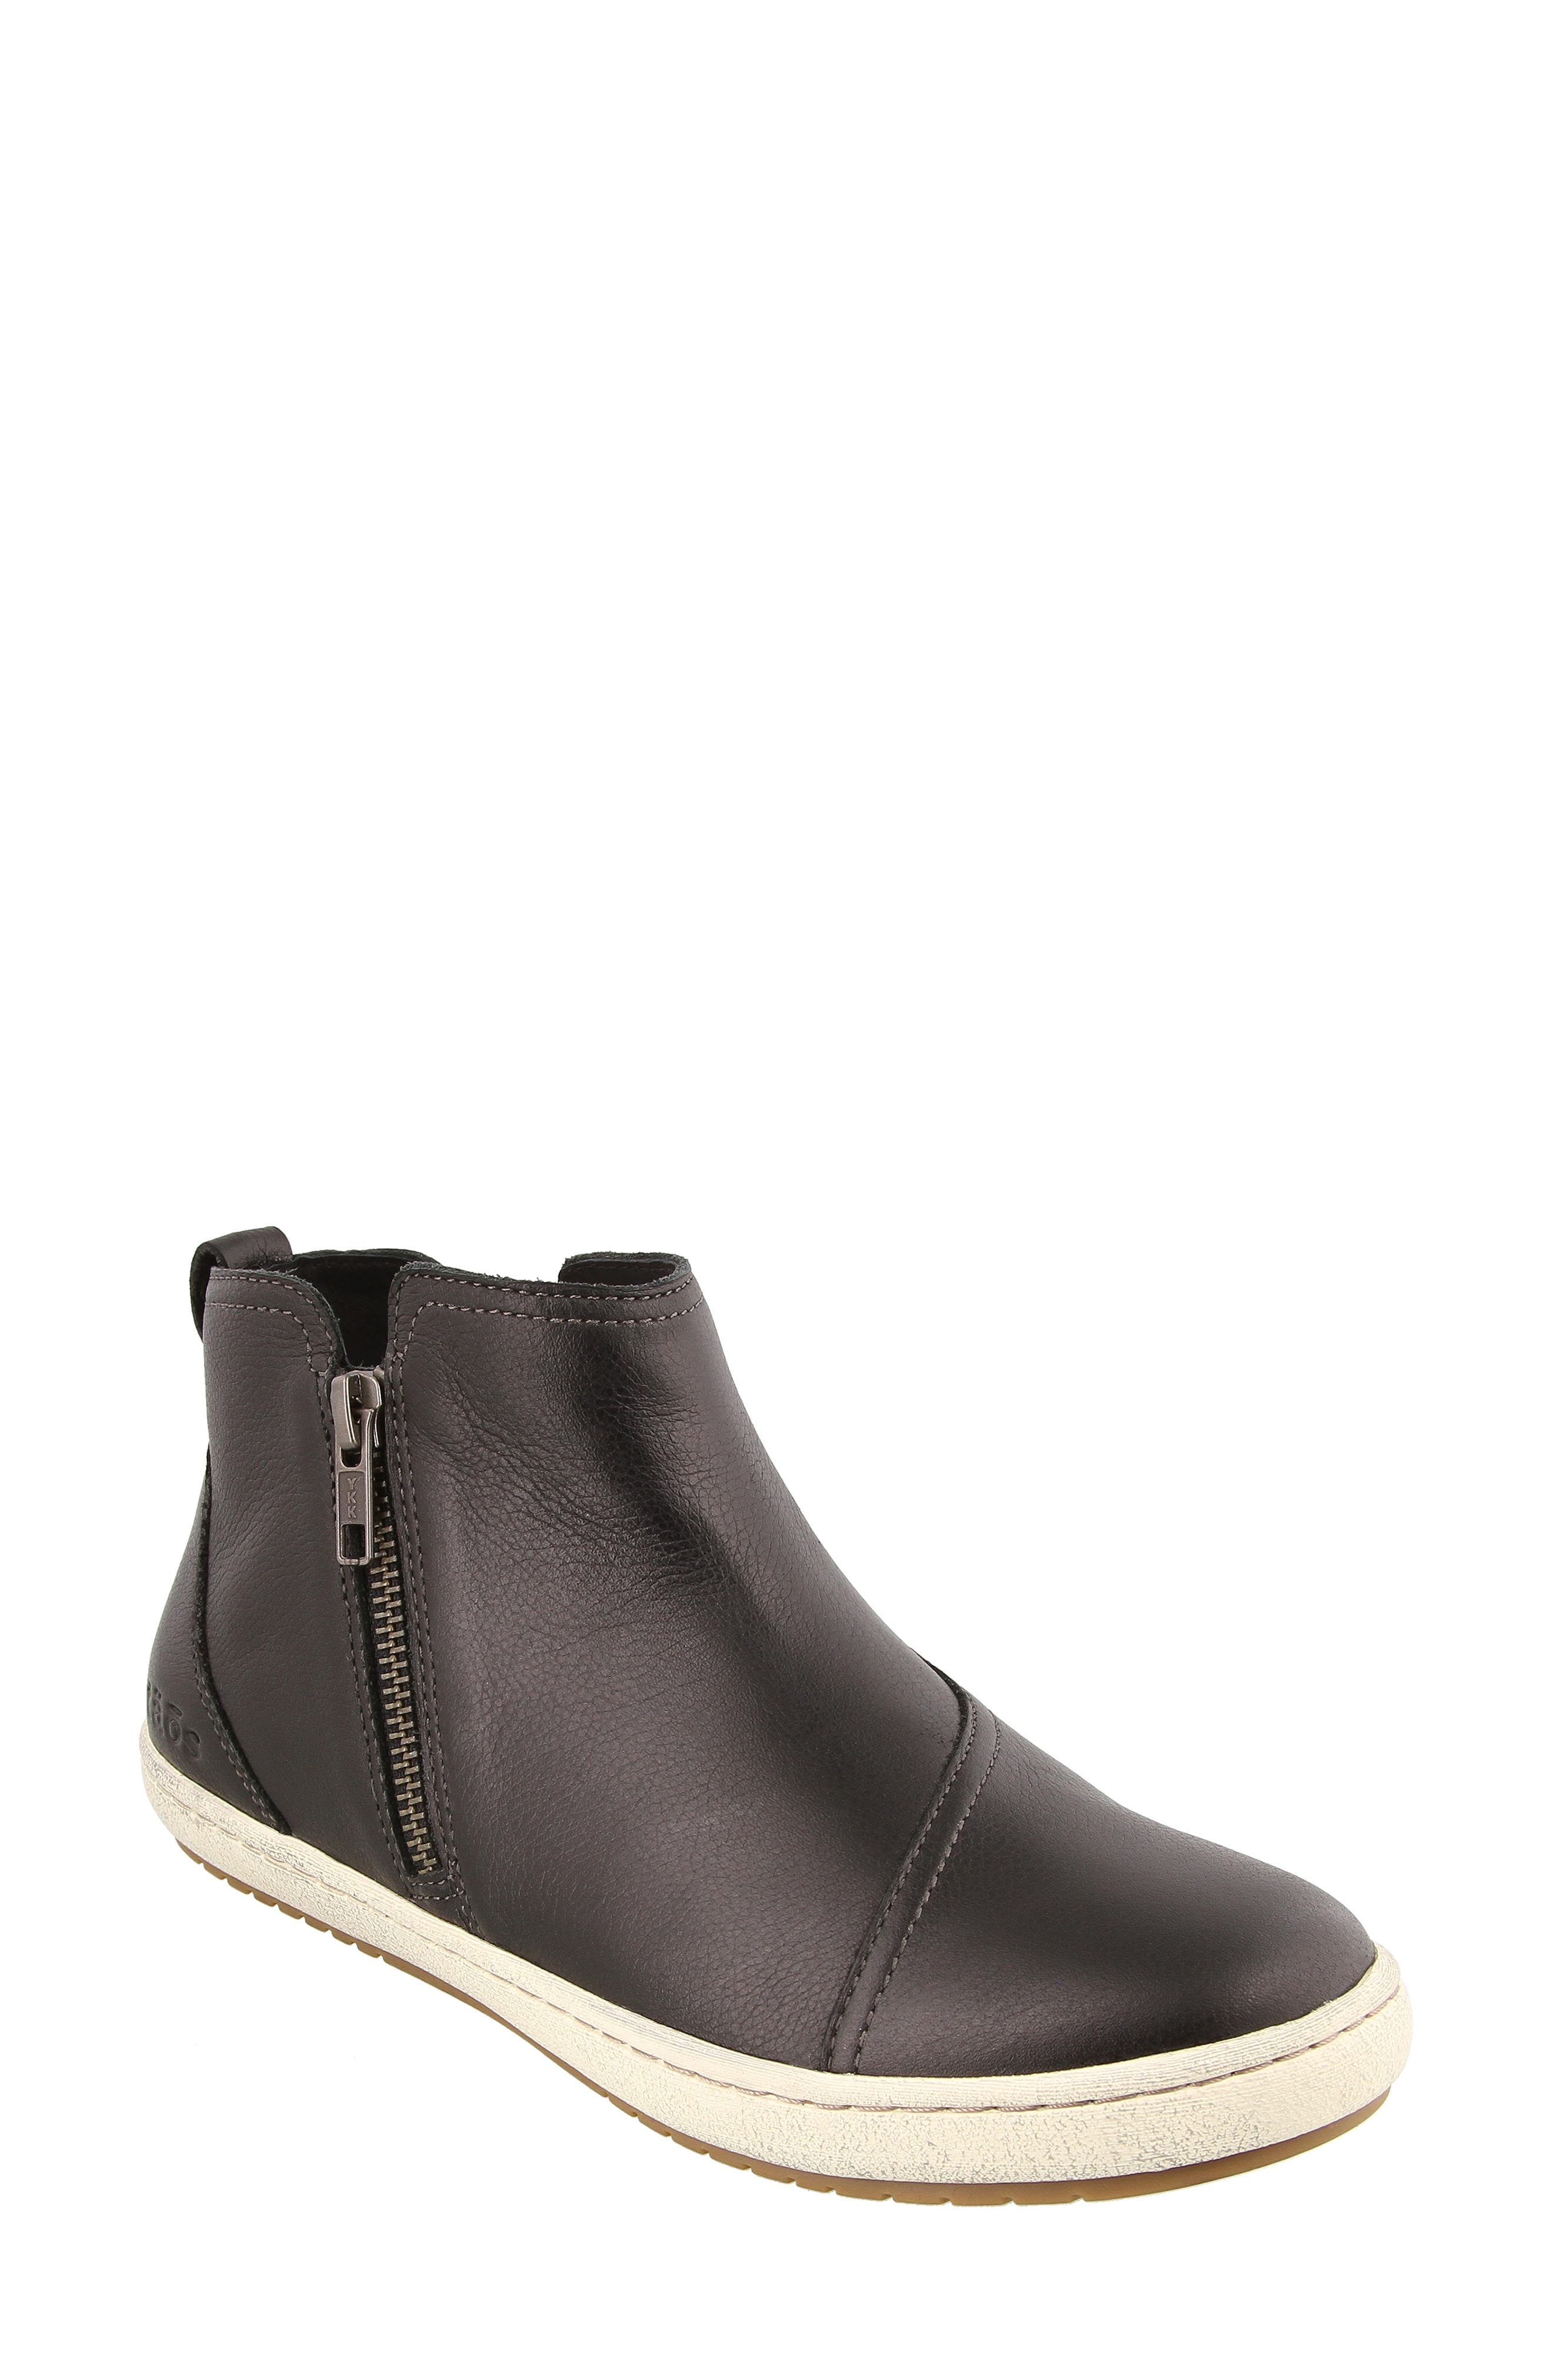 Women's Taos Shoes | Nordstrom